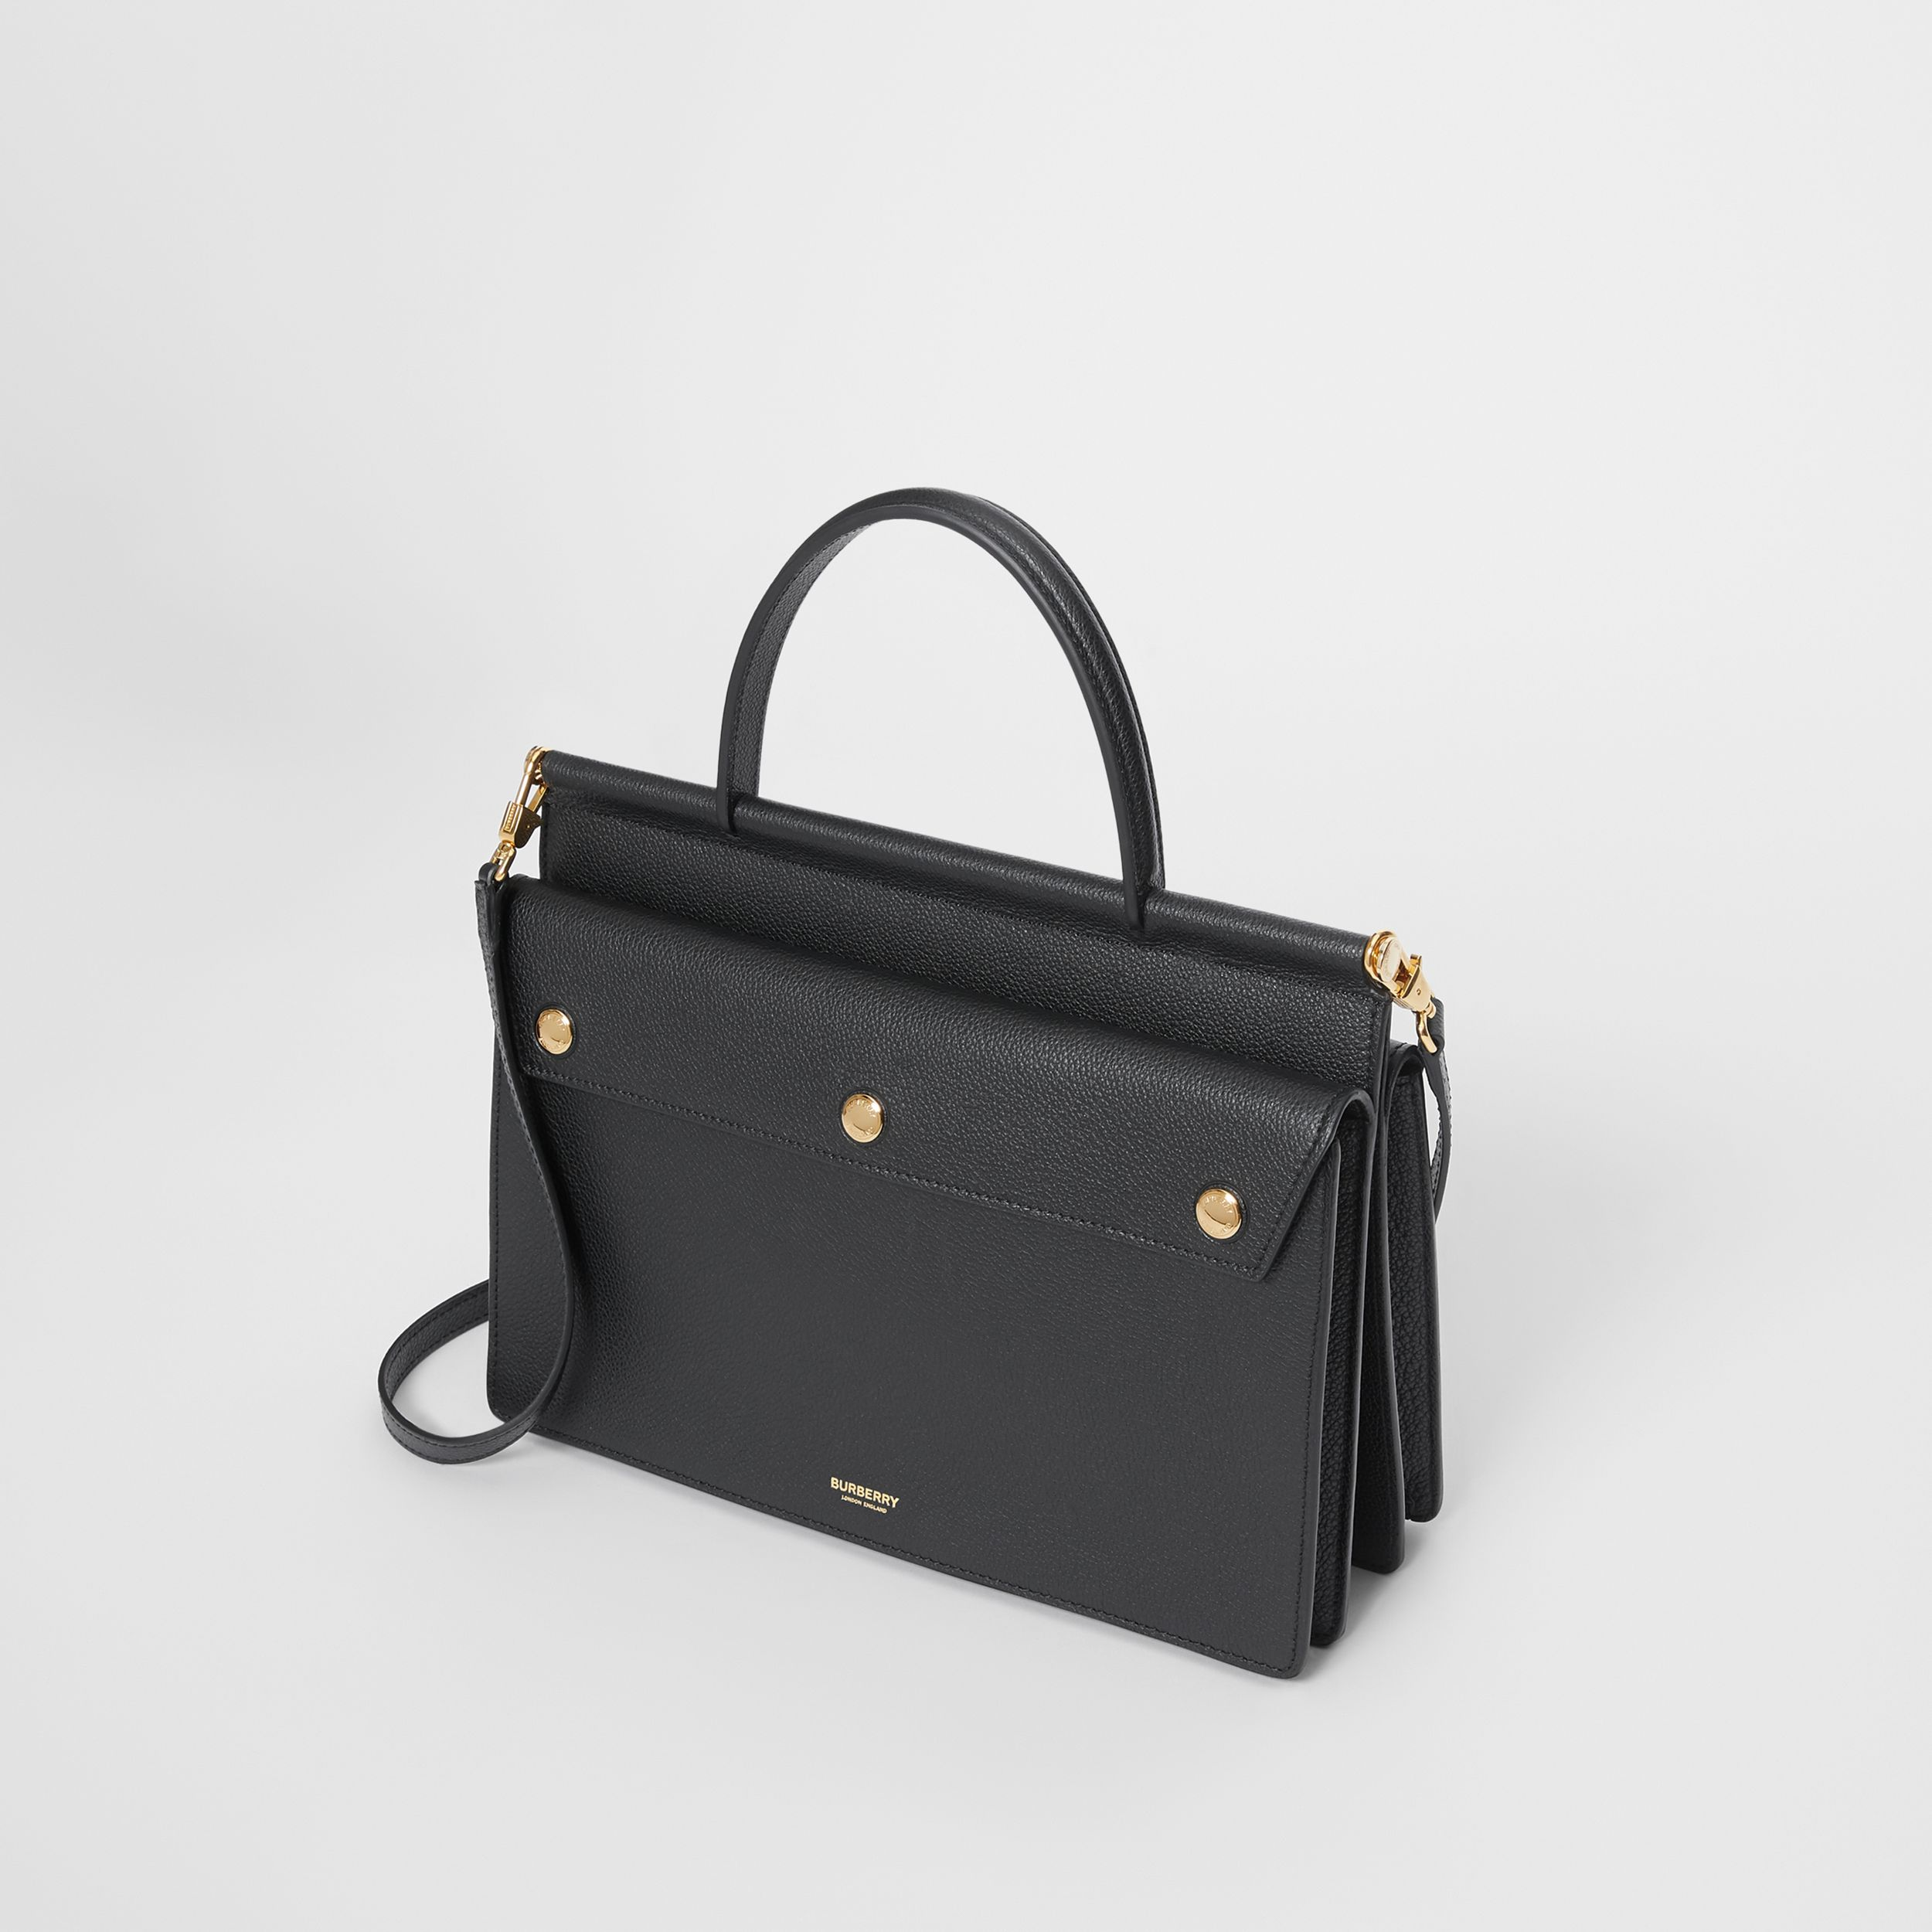 Small Leather Title Bag with Pocket Detail in Black - Women | Burberry Singapore - 4